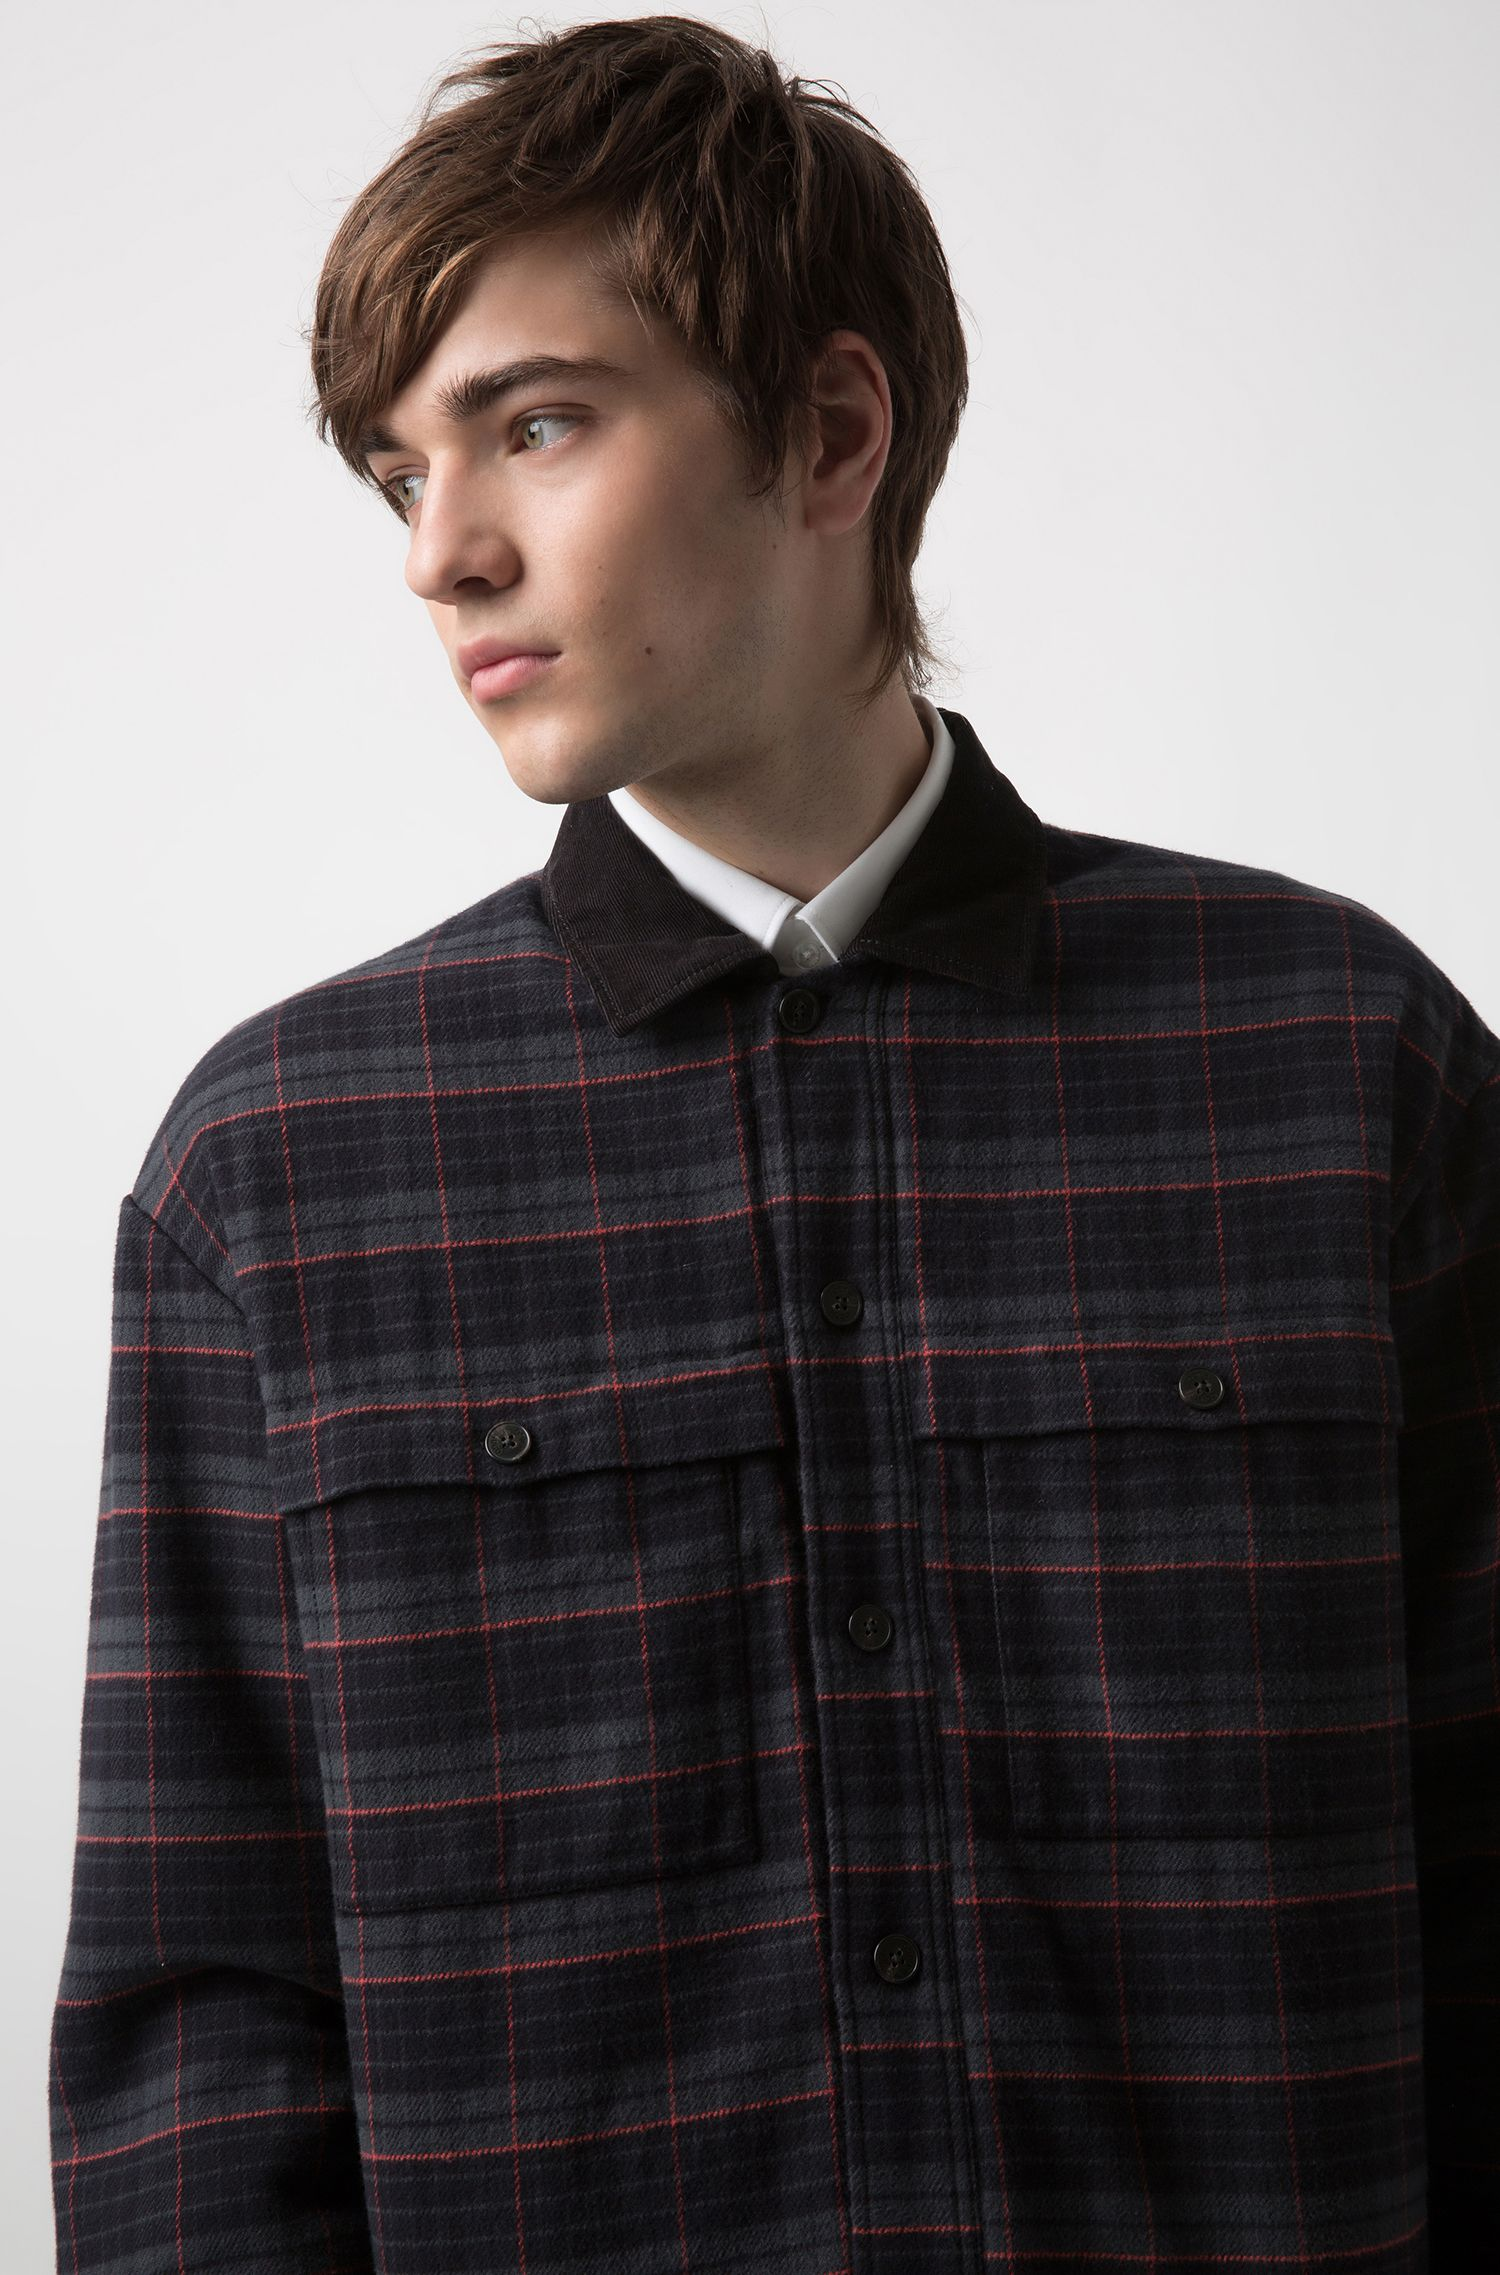 Glen-check cotton shirt with contrast collar, Patterned